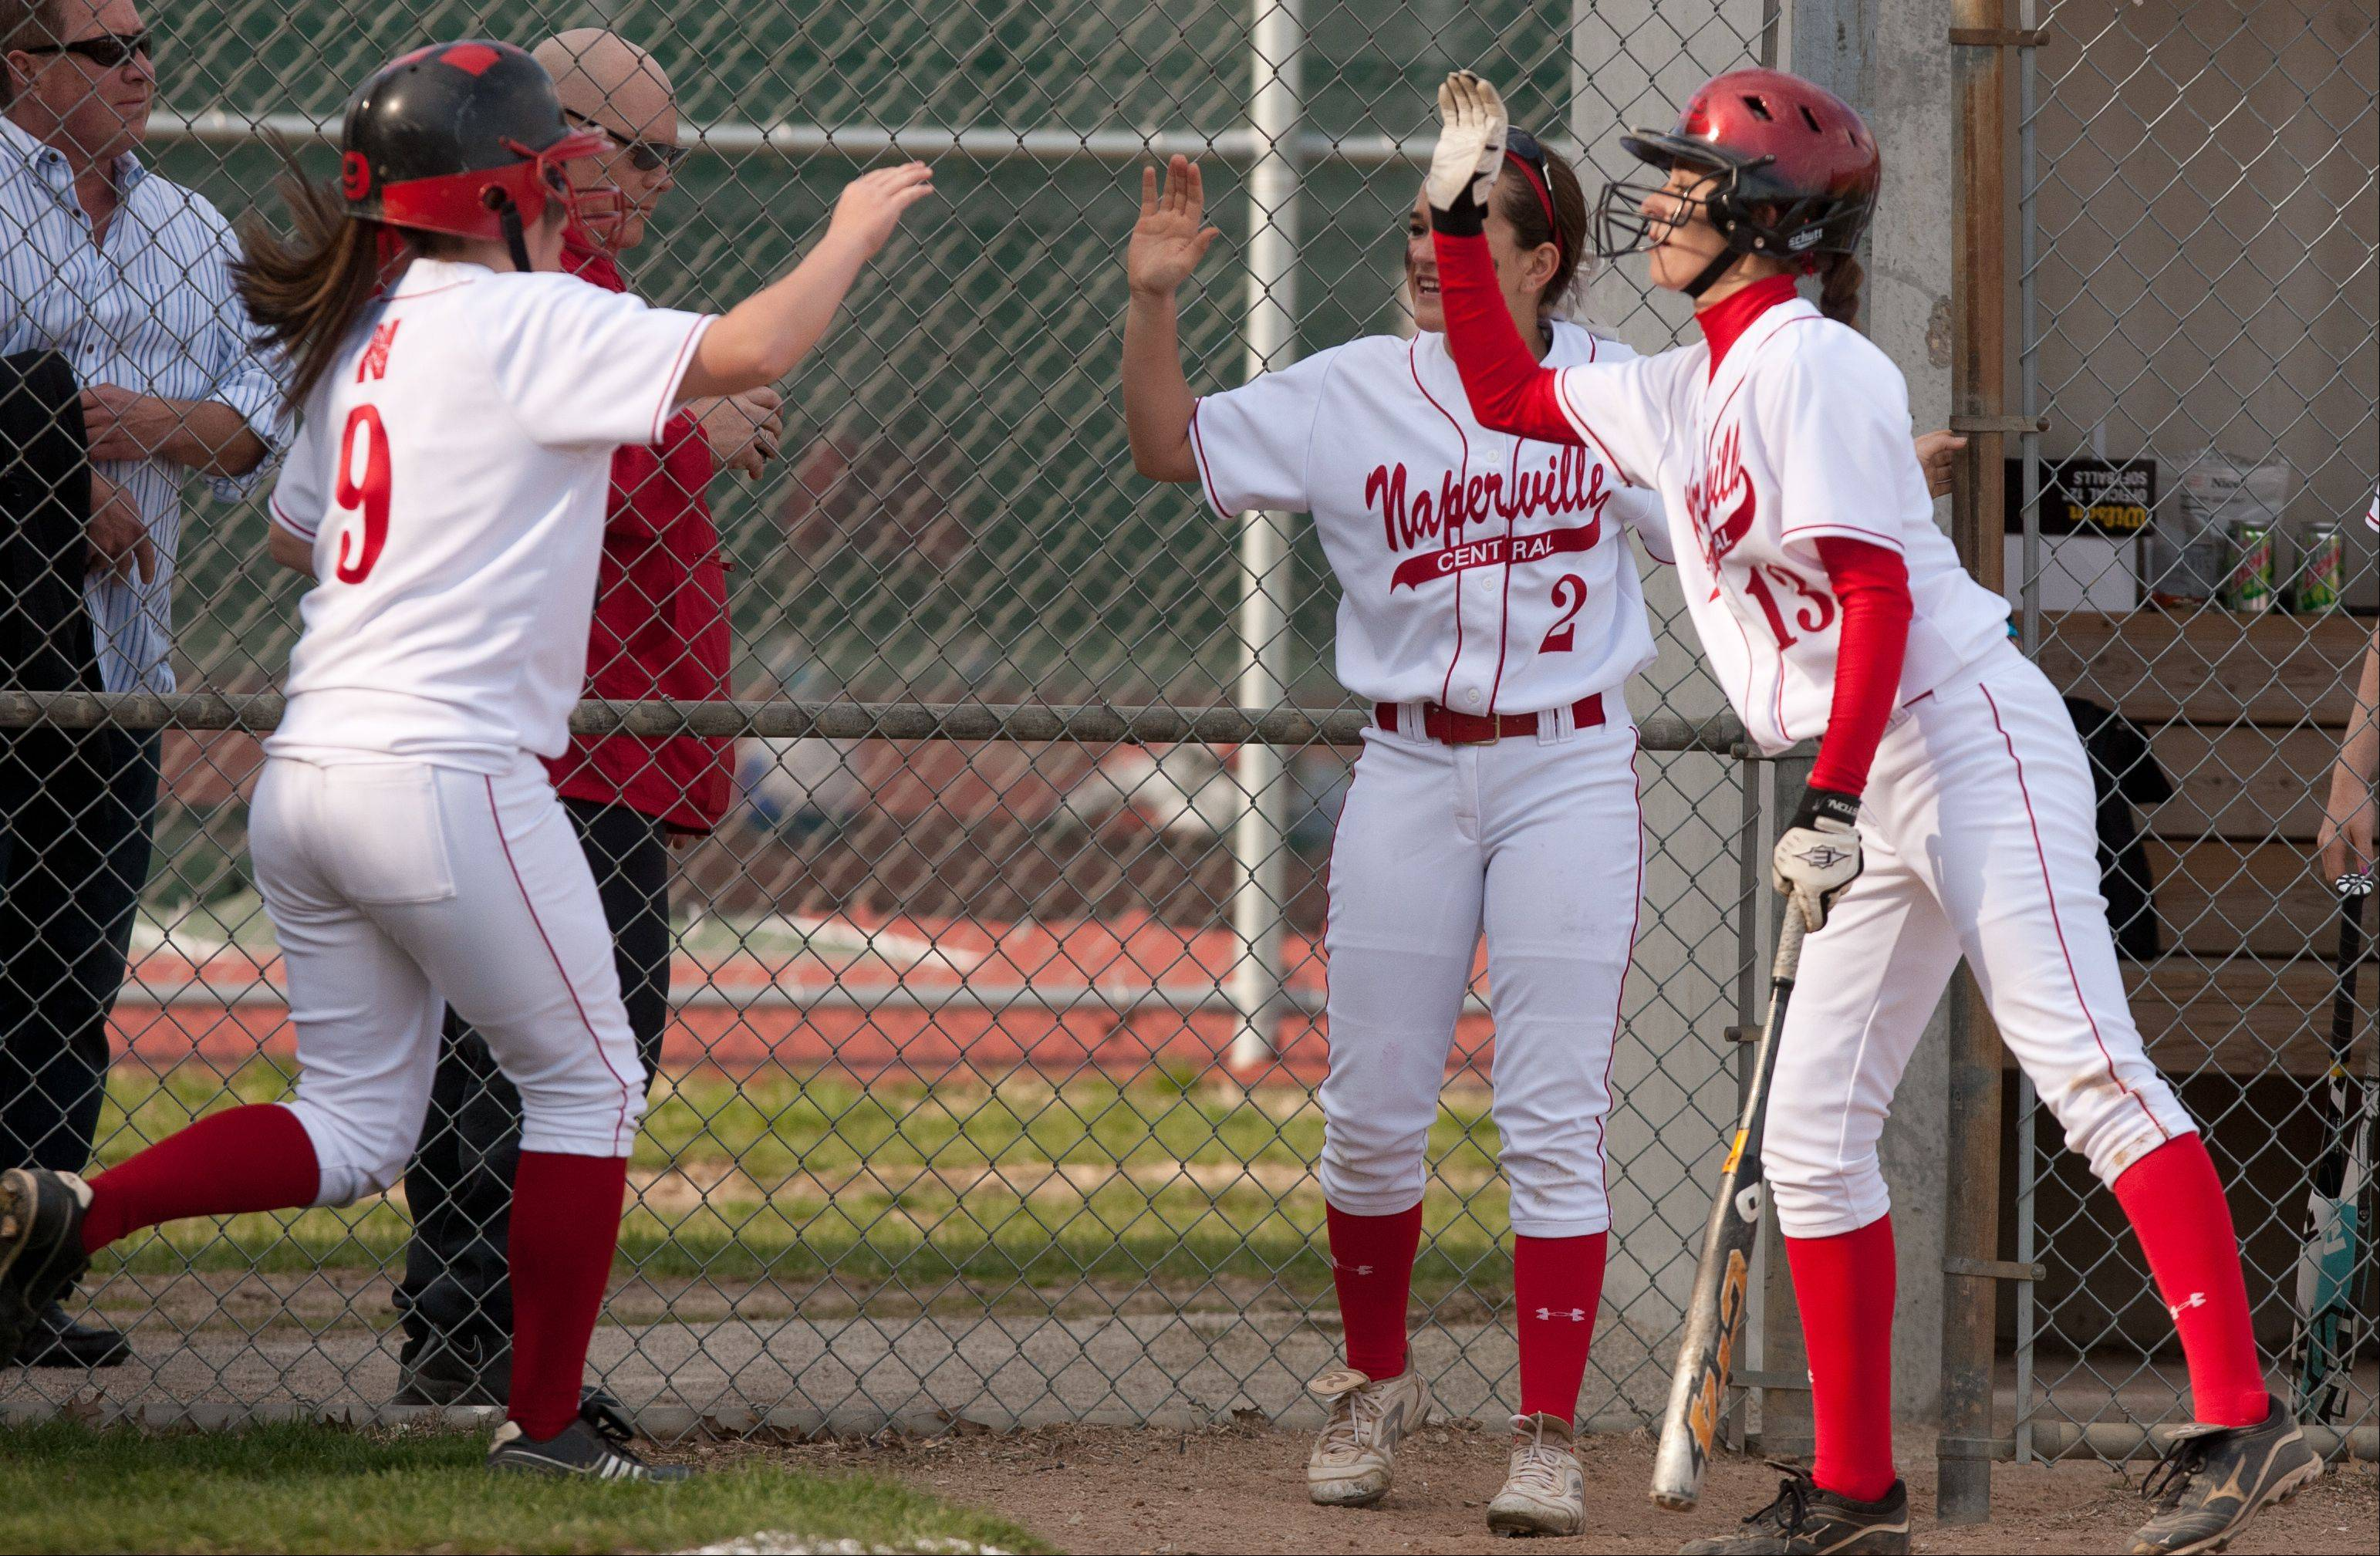 Daniel White/dwhite@dailyherald.comNaperville Central's Emily George, left, high fives Katie Lamich (2) and Courtney Giebel (13) after scoring against Naperville North, during girls softball action.